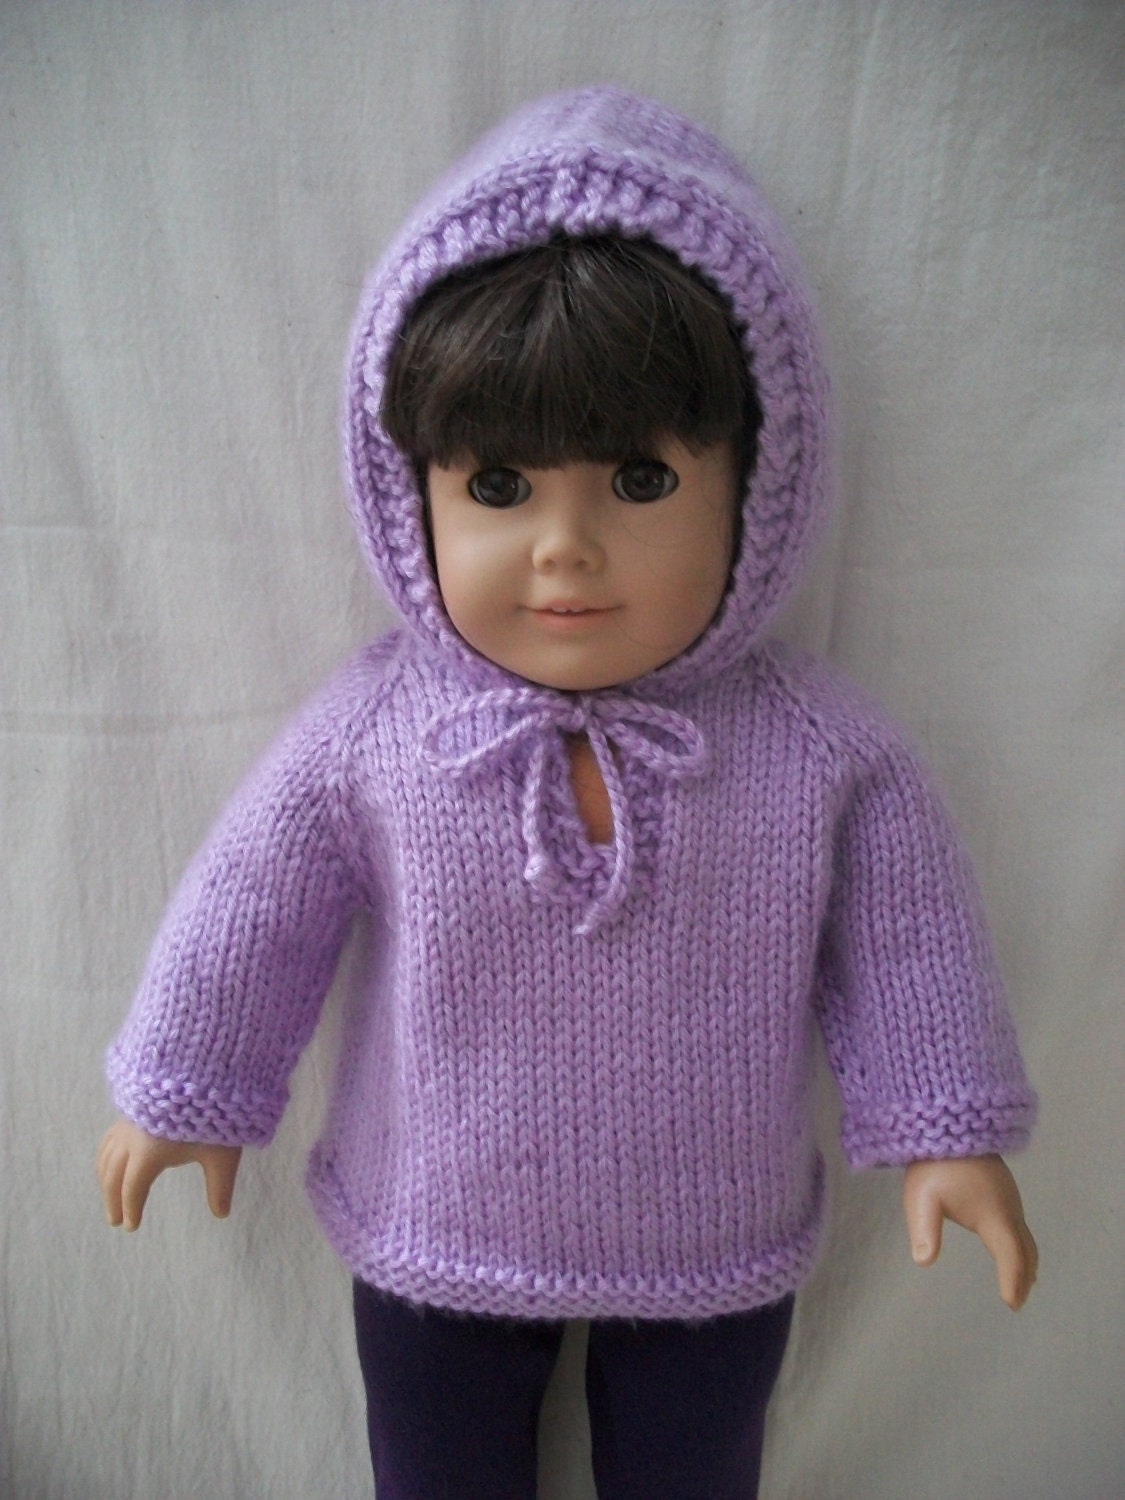 Knitting Pattern For Dolls Jumper : PDF Knitting Pattern for American Girl or 18 Doll by ...